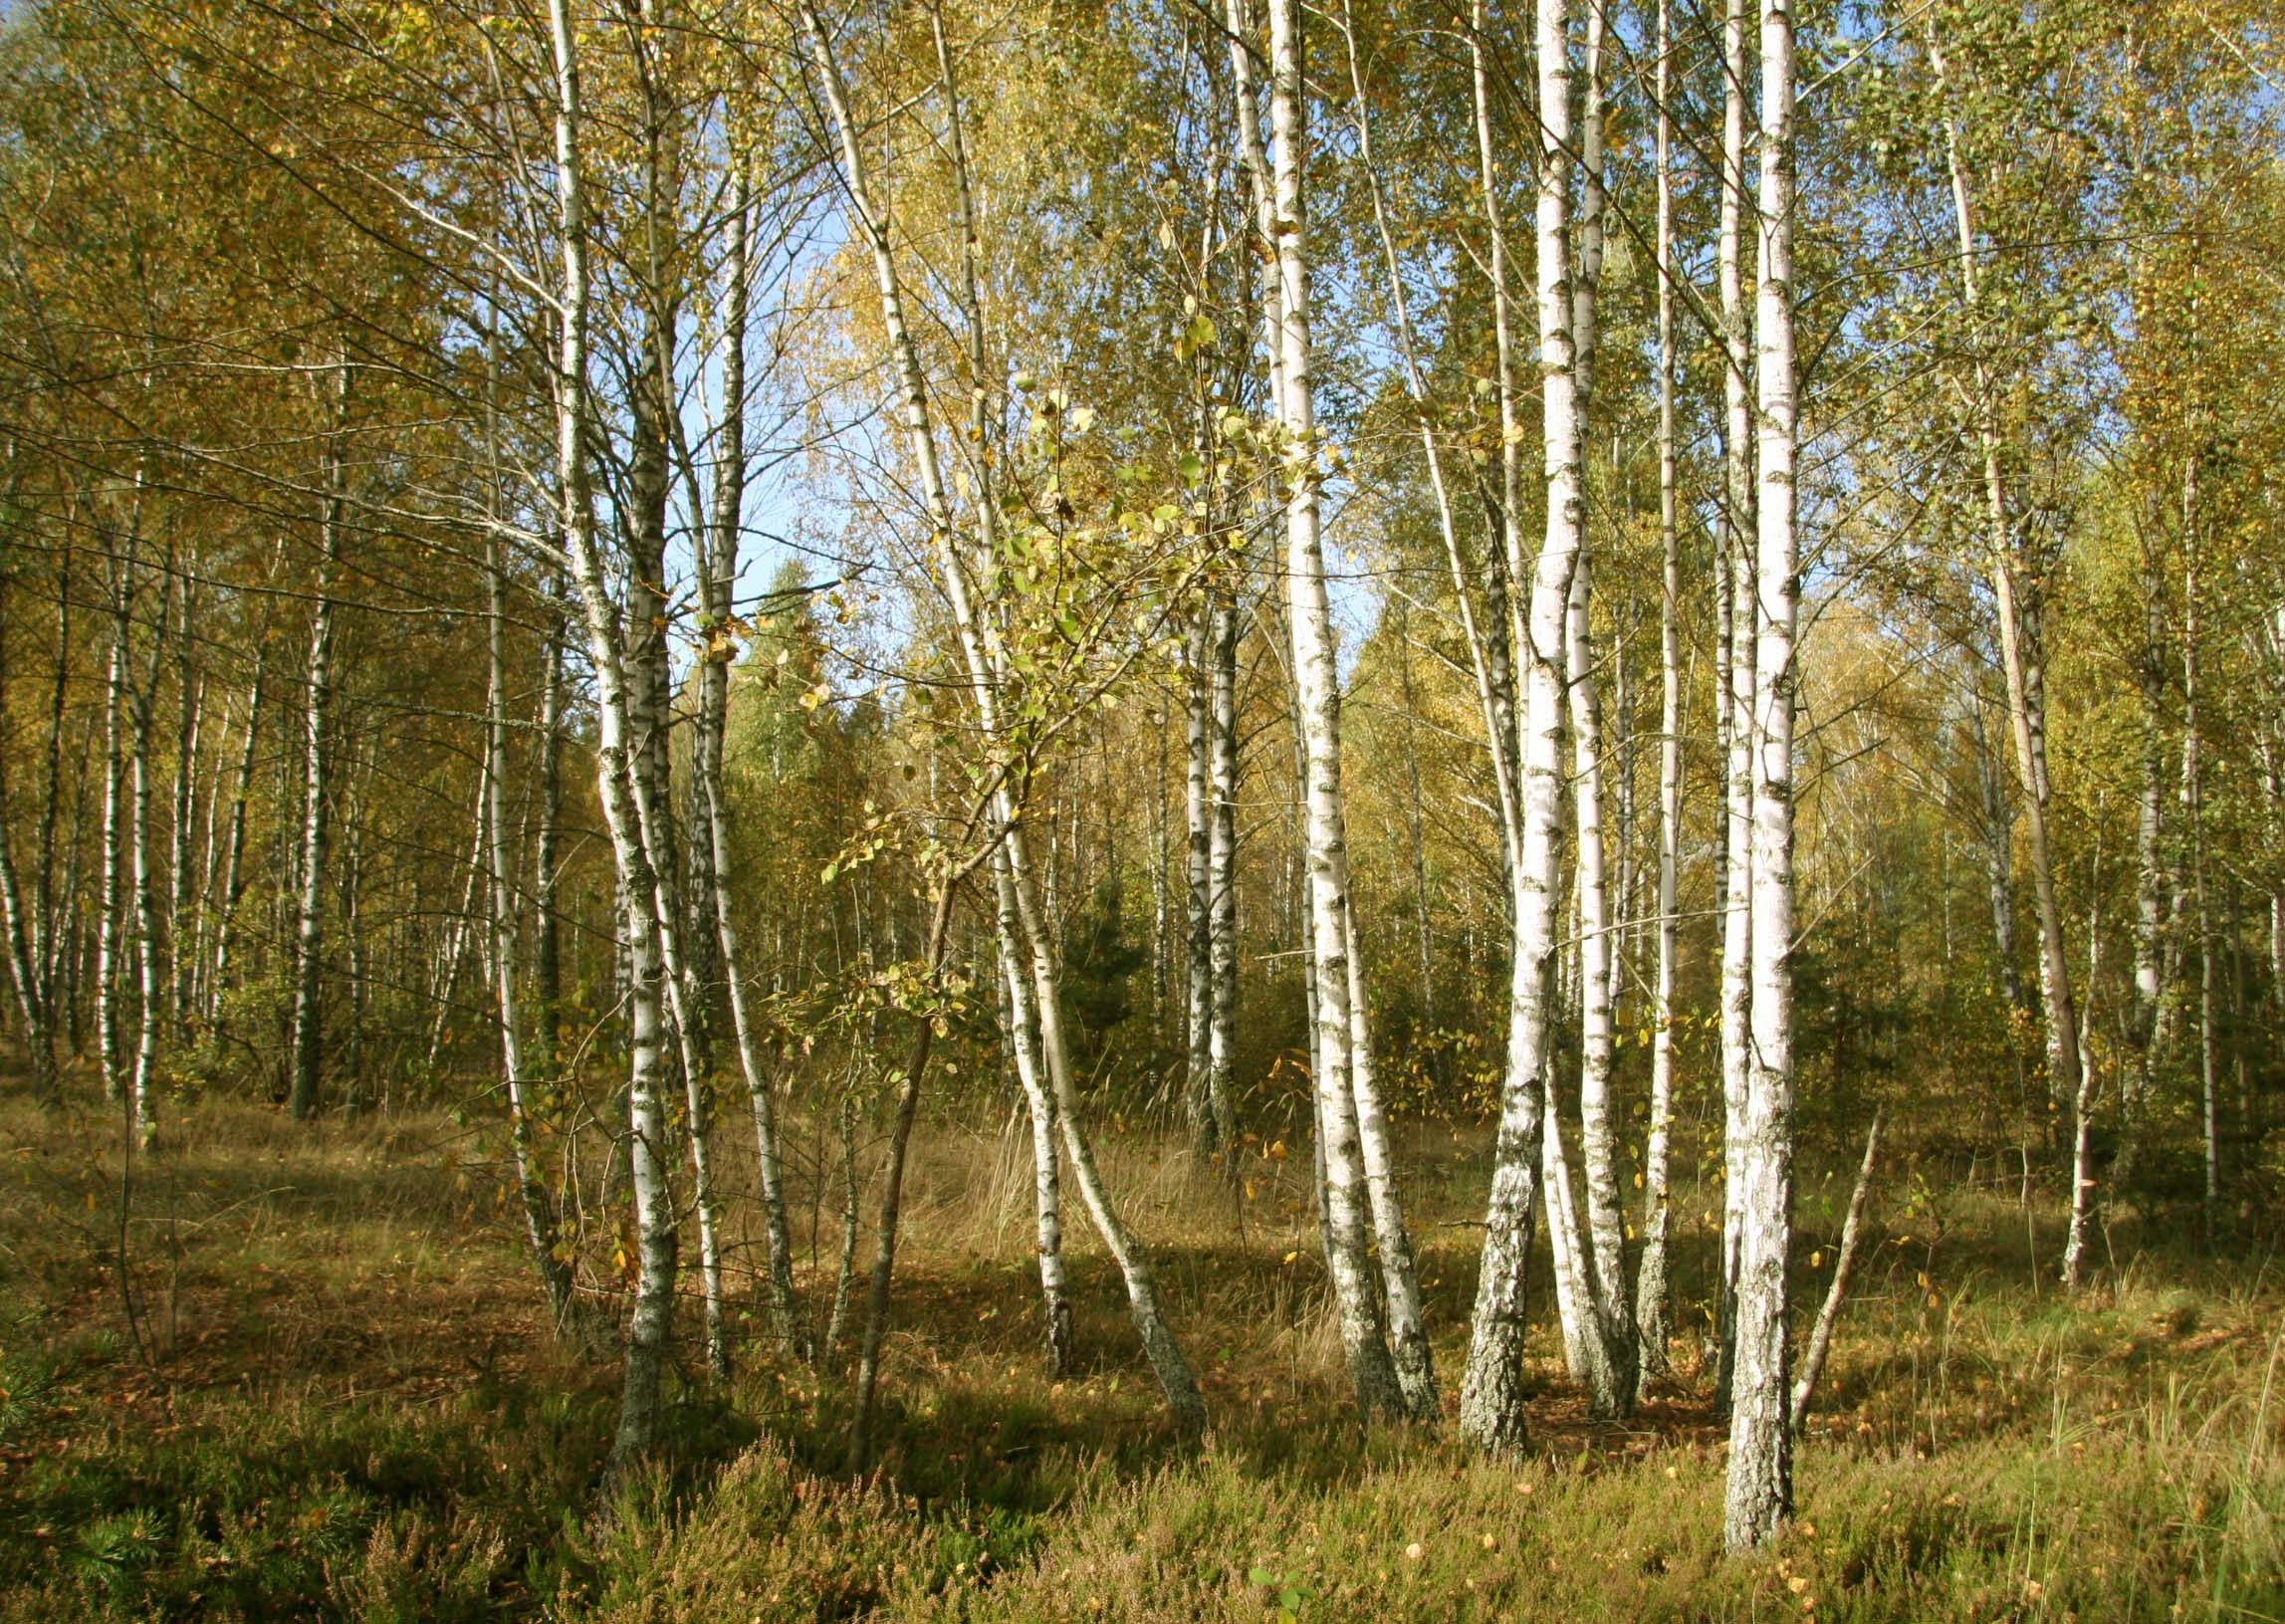 Birch forest near No. 4 nuclear power plant